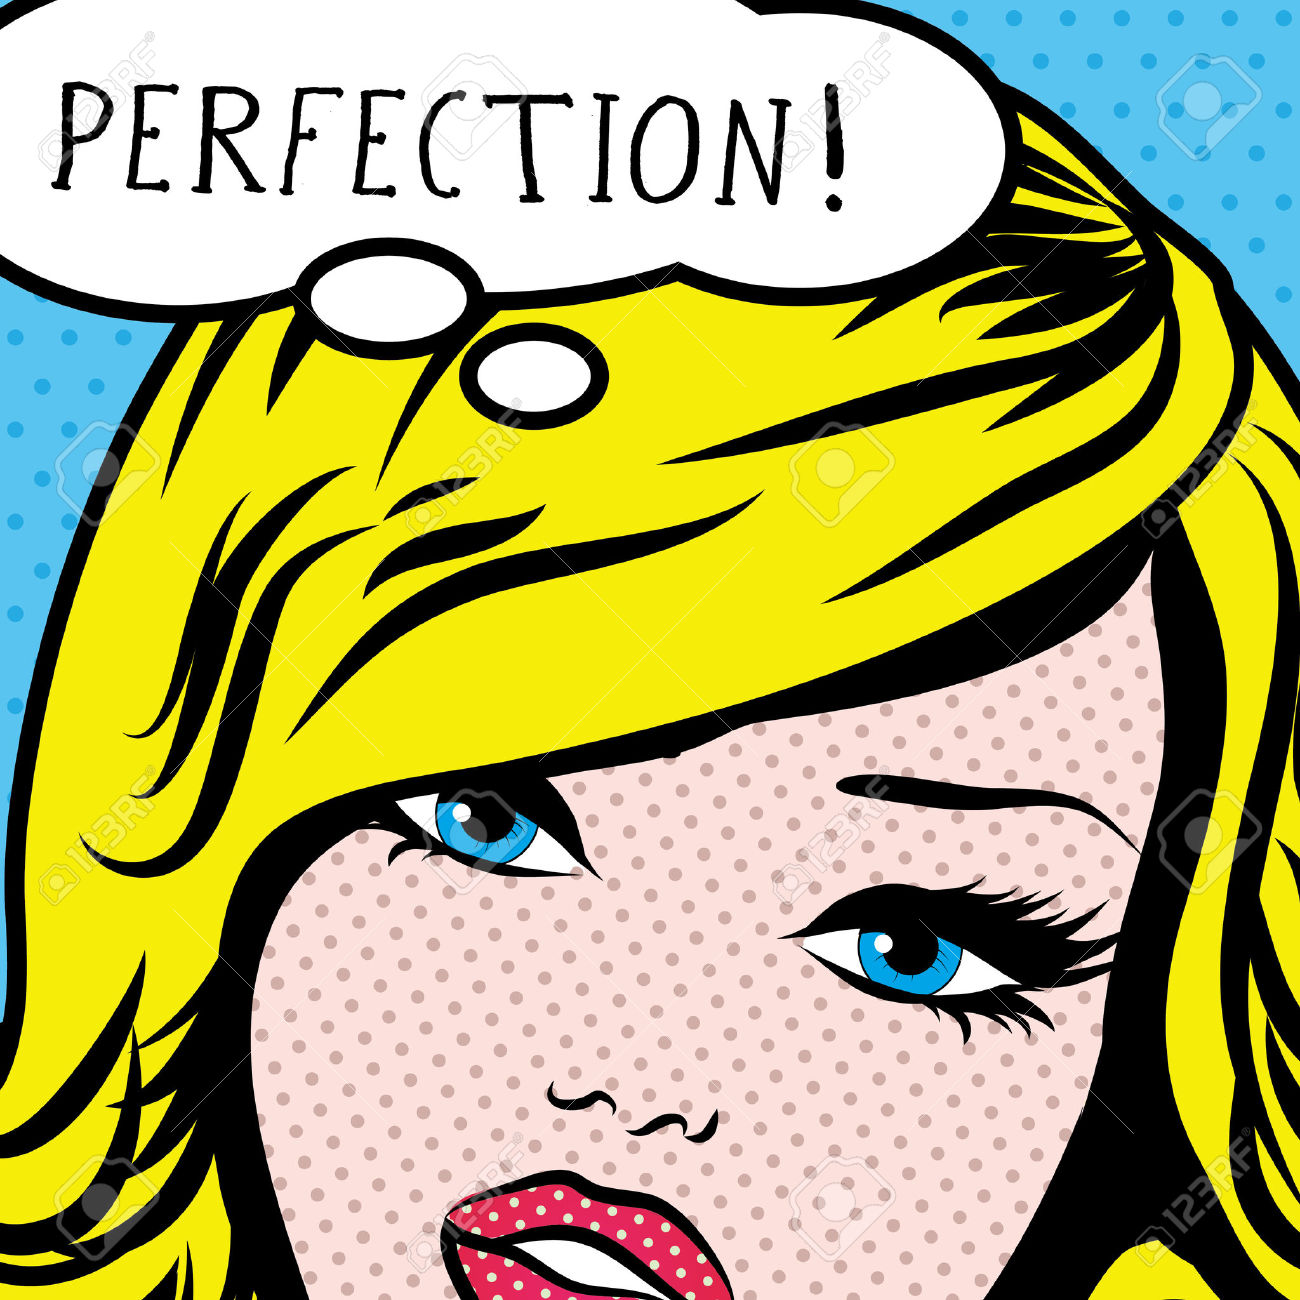 Perfection clipart #2, Download drawings